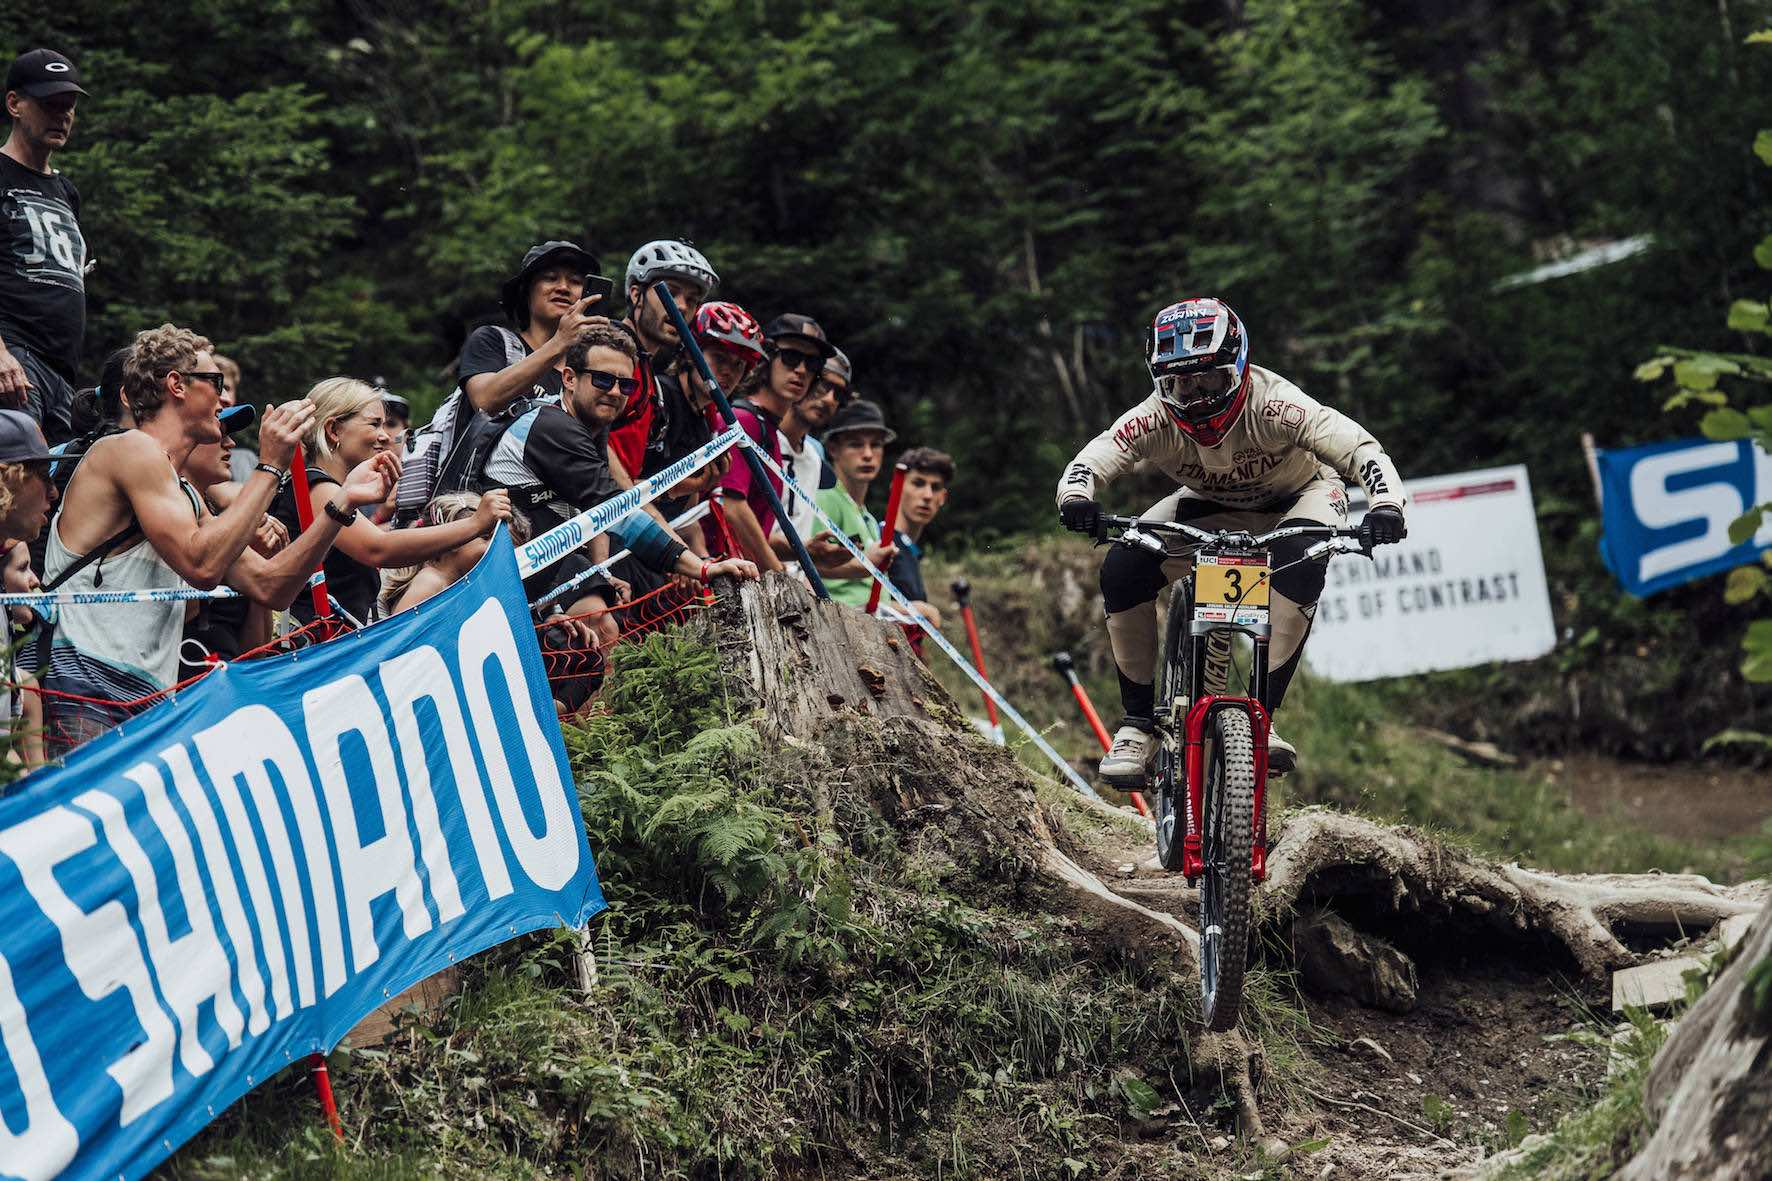 Amaury Pierron on his way to winning the 2018 Leogang Downhill MTB World Cup